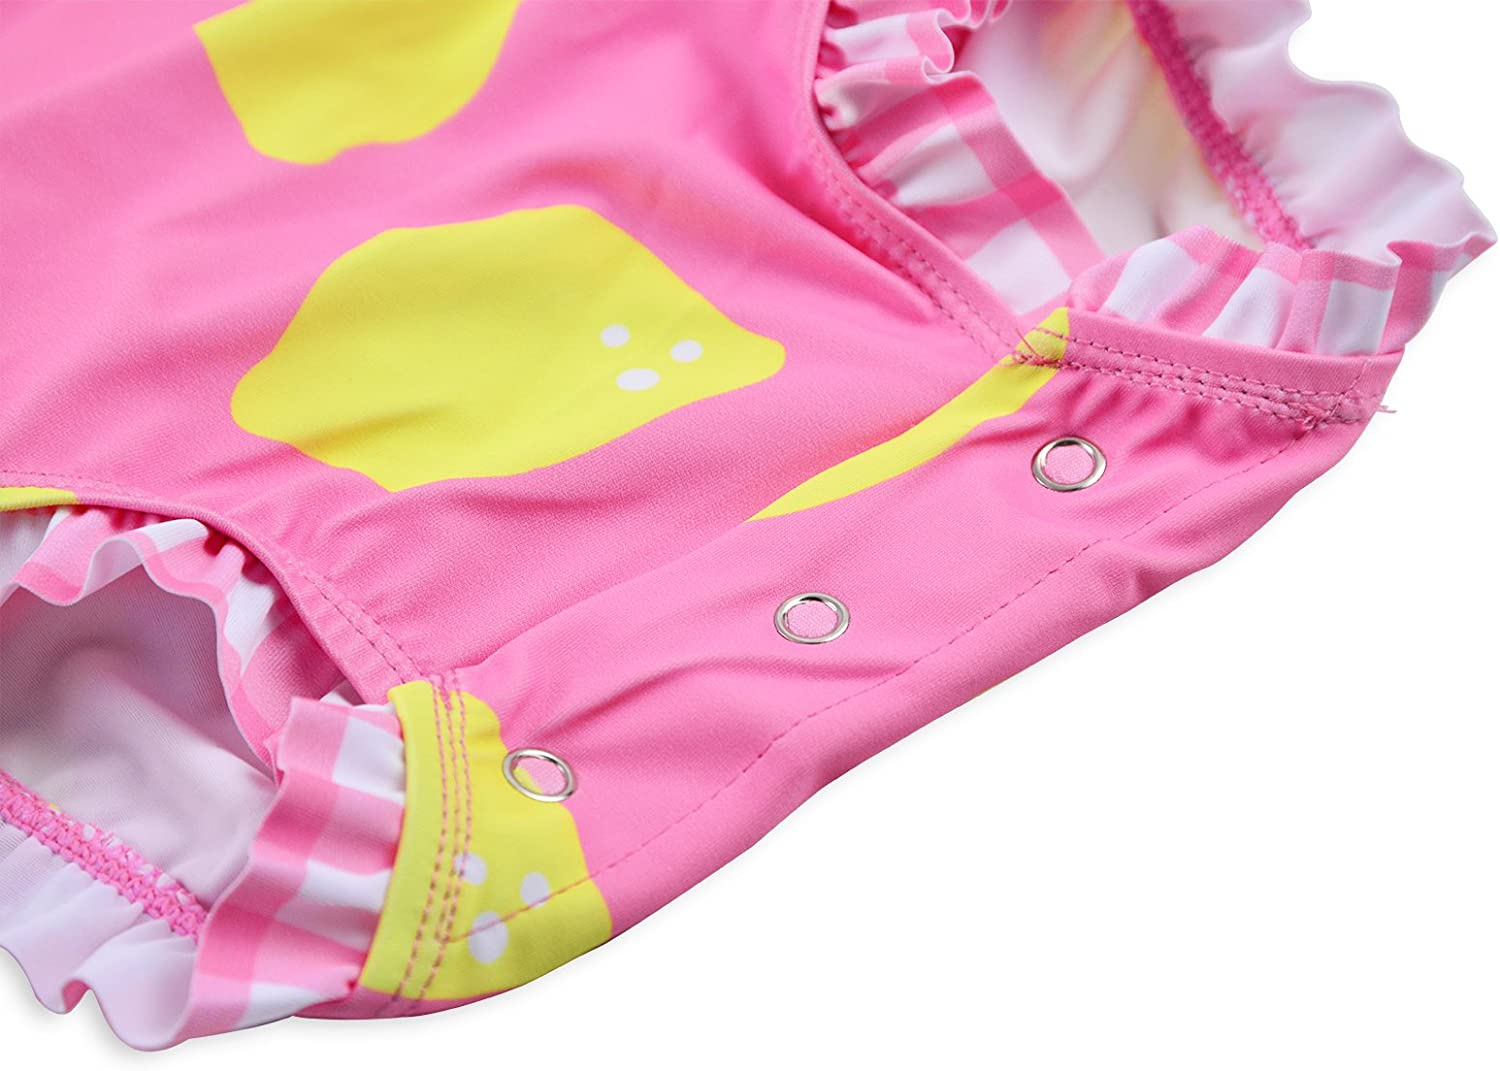 Long Sleeve Rash Guard One Piece Swimsuit for Girls Baby Toddler Girl Swimming Suit with UV40 Sun Protection